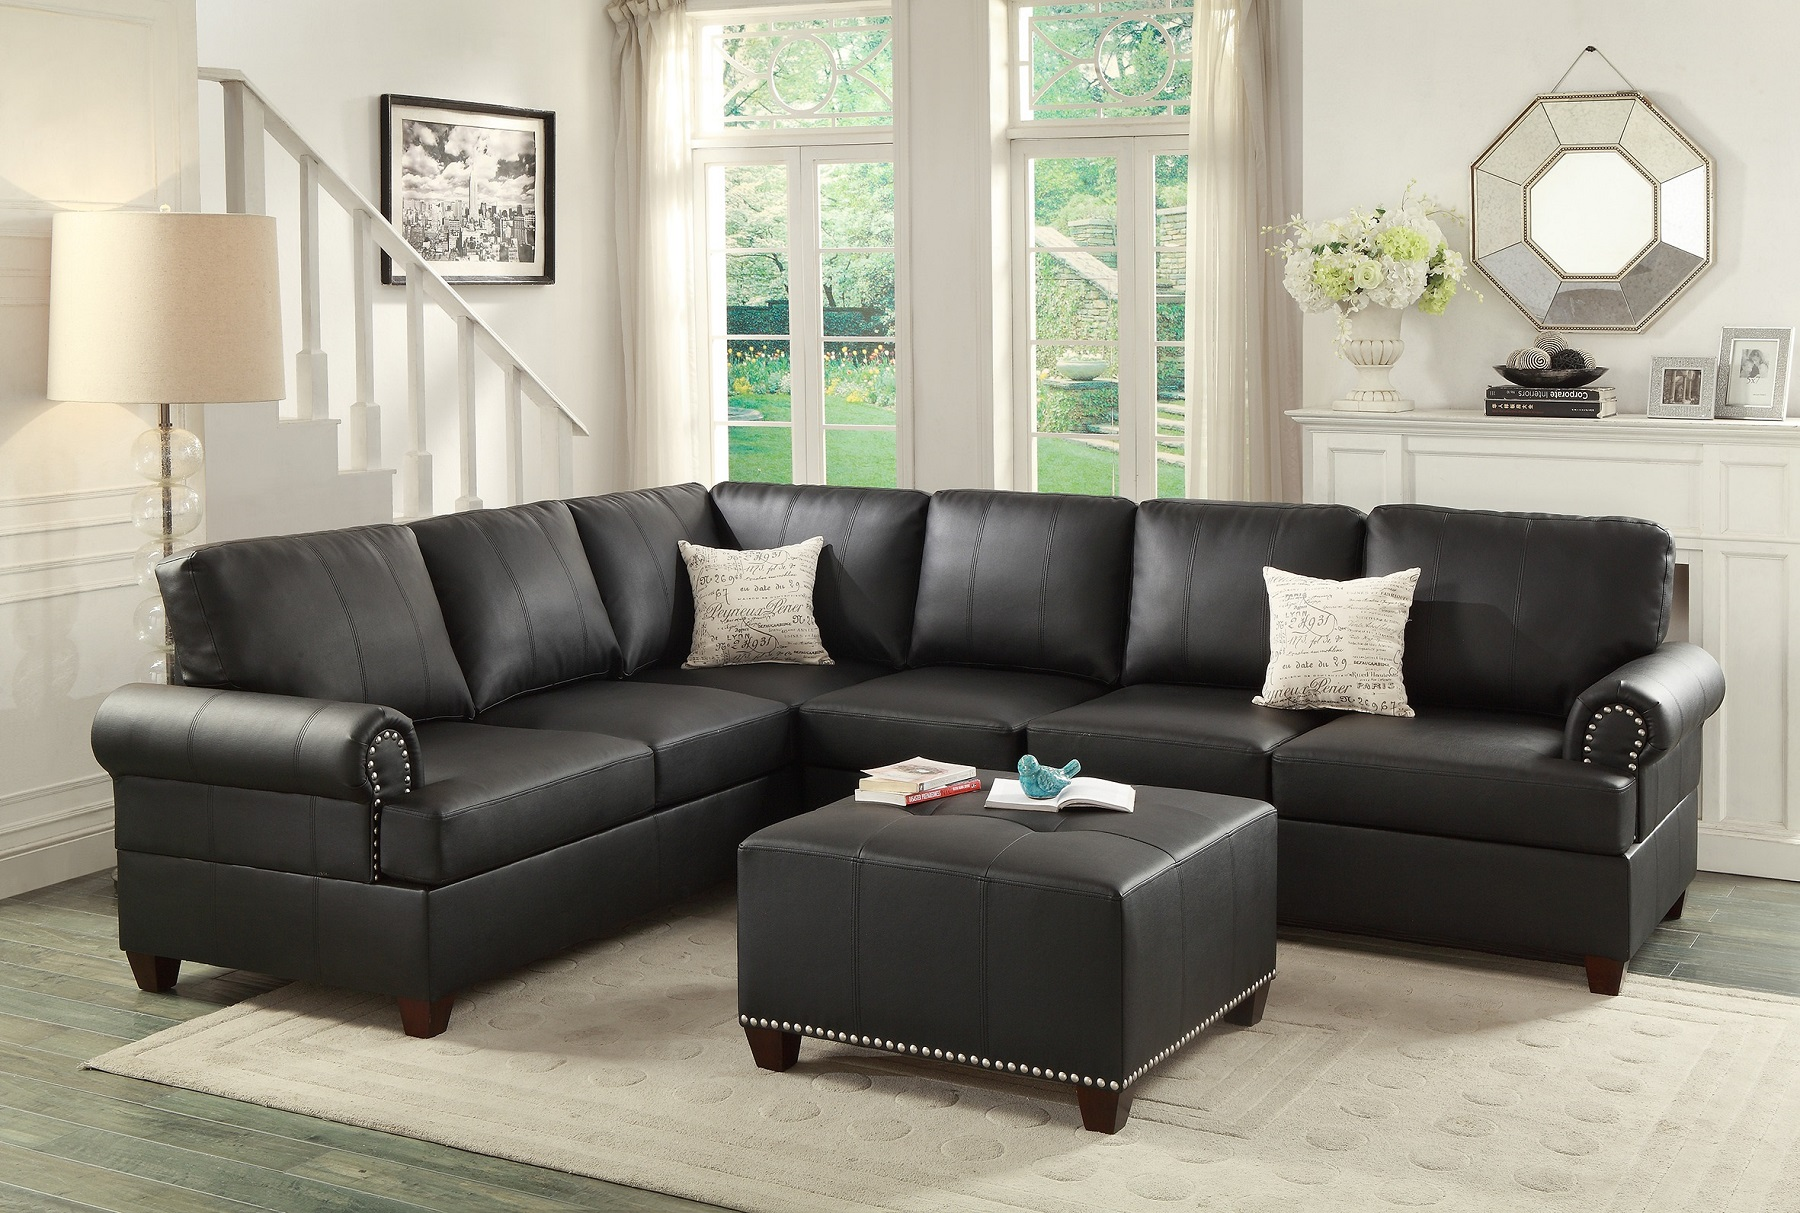 2pcs sectional sofa black modern bonded leather couch sofa l r loveseat wedge reversible sectionals